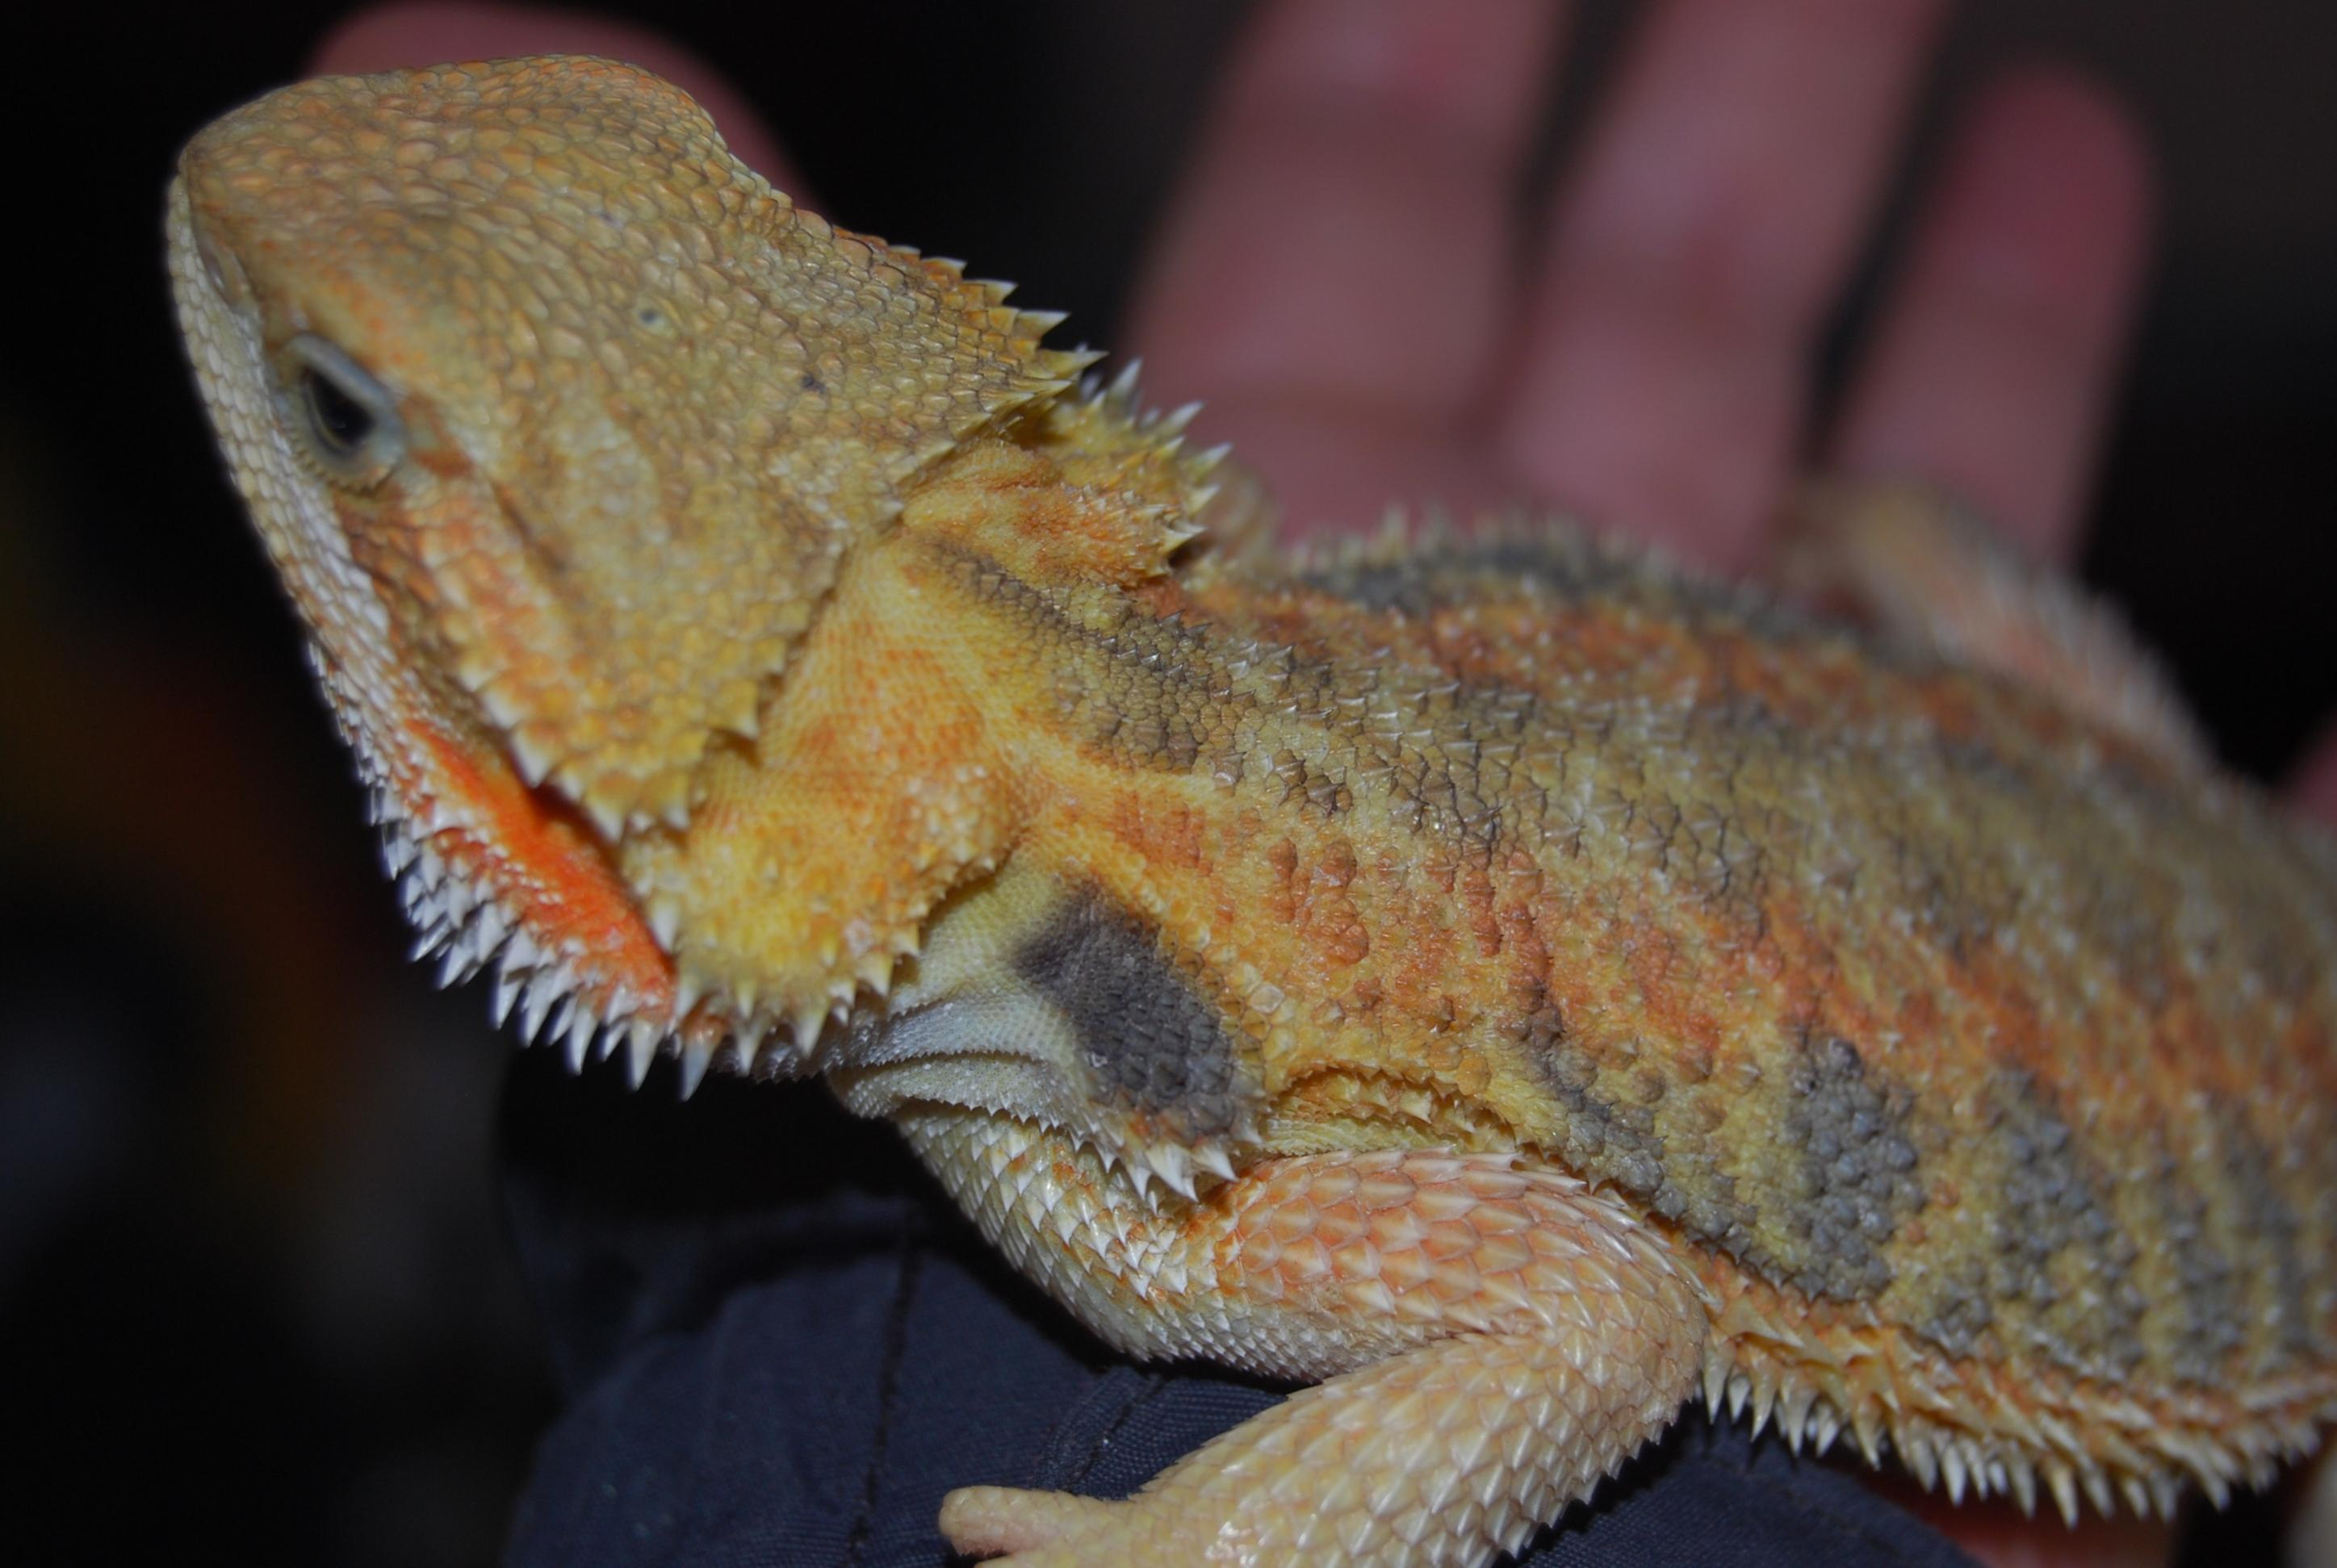 Reptile Forums - View Single Post - W Midlands Red/Hypo Citrus x